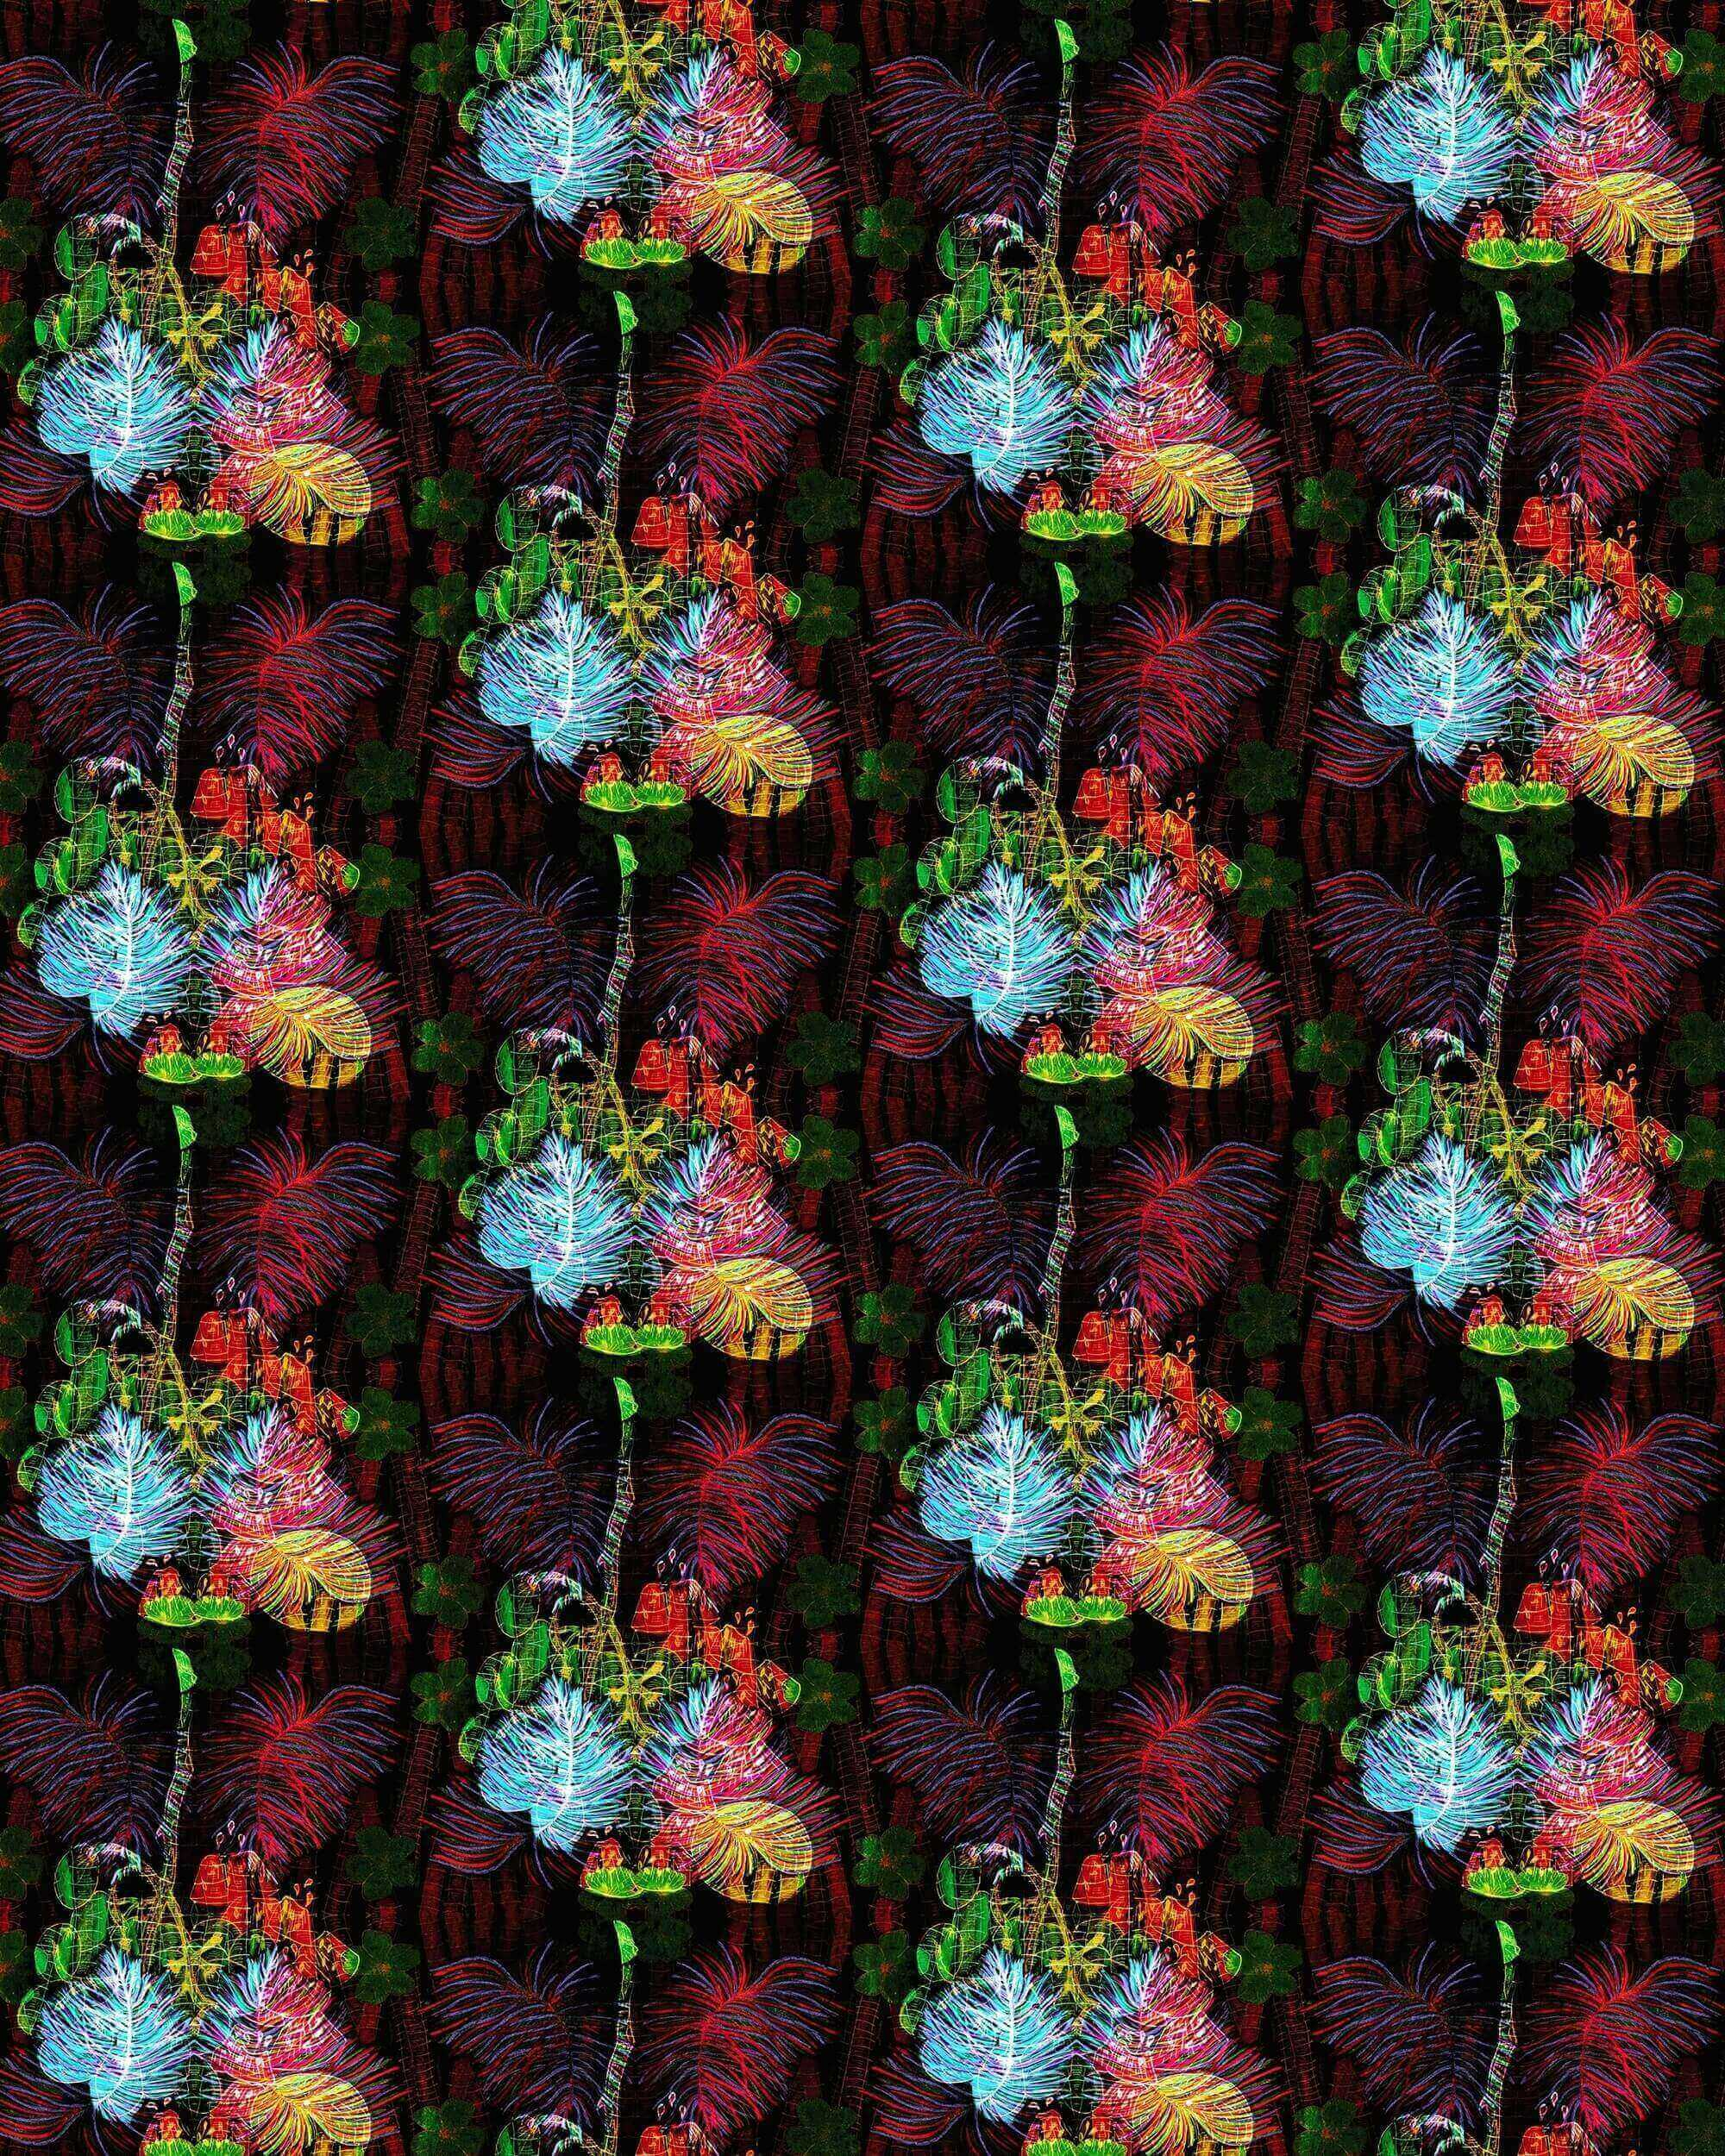 a digital print showing repeated pattern of a cluster of leaves and fruit